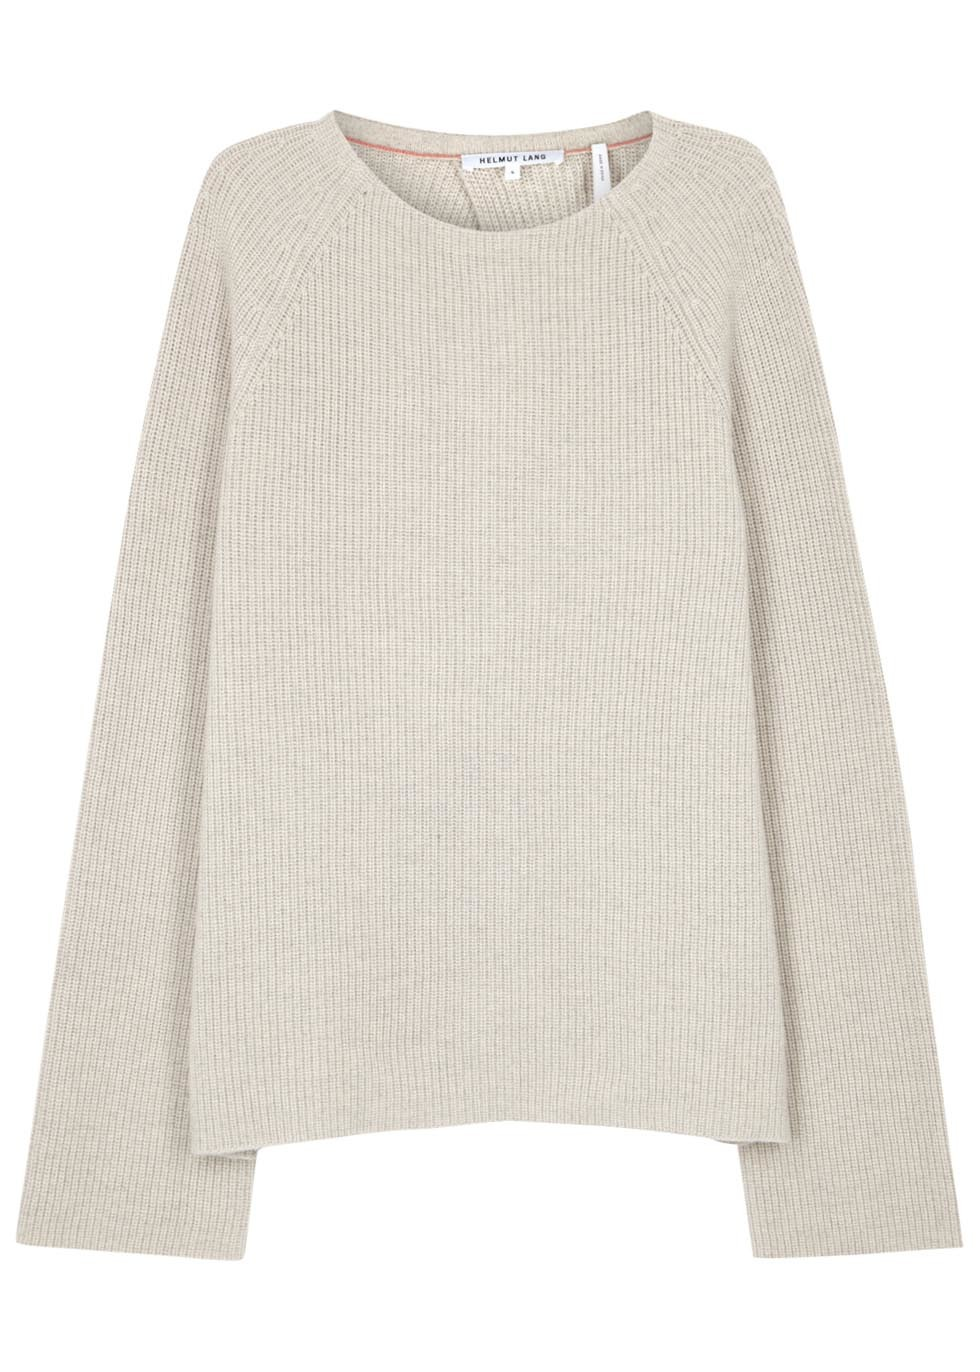 Stone Open Back Cotton Blend Jumper - pattern: plain; style: standard; predominant colour: ivory/cream; occasions: casual; length: standard; fibres: cotton - mix; fit: slim fit; neckline: crew; sleeve length: long sleeve; sleeve style: standard; texture group: knits/crochet; pattern type: knitted - fine stitch; season: s/s 2016; wardrobe: basic